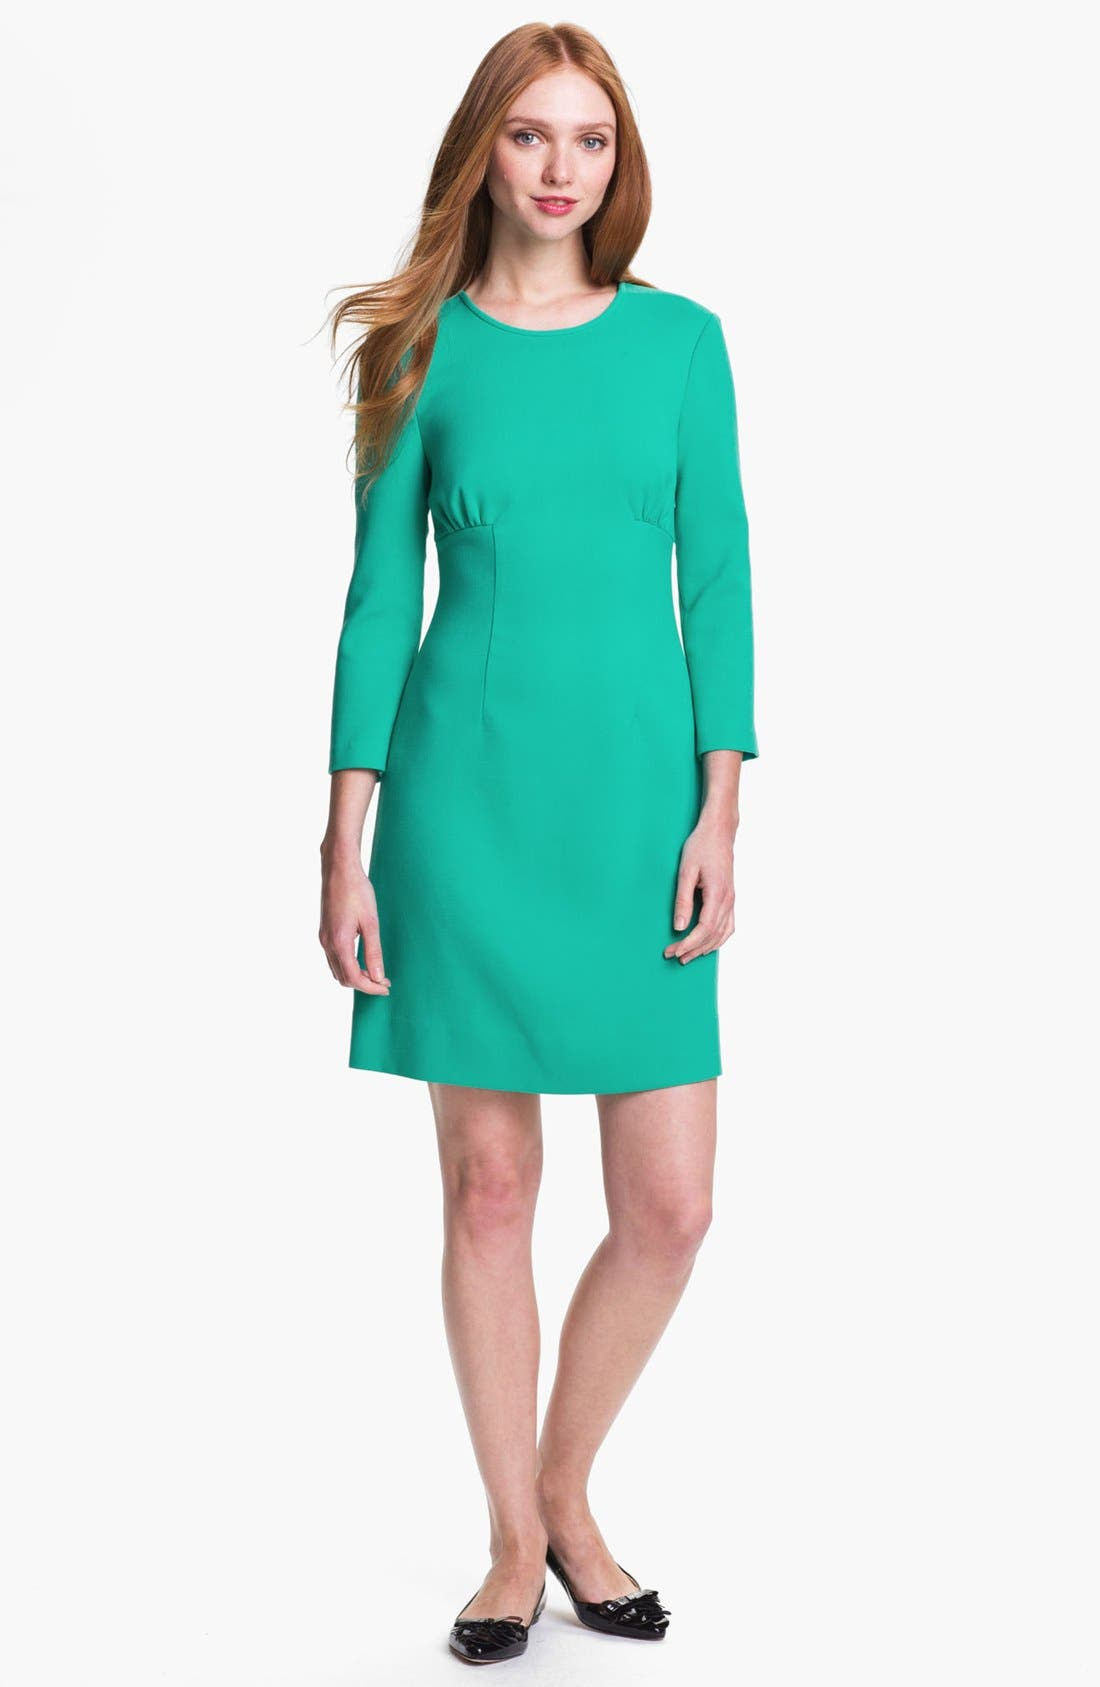 Alternate Image 1 Selected - kate spade new york 'reilly' sheath dress (Nordstrom Exclusive)